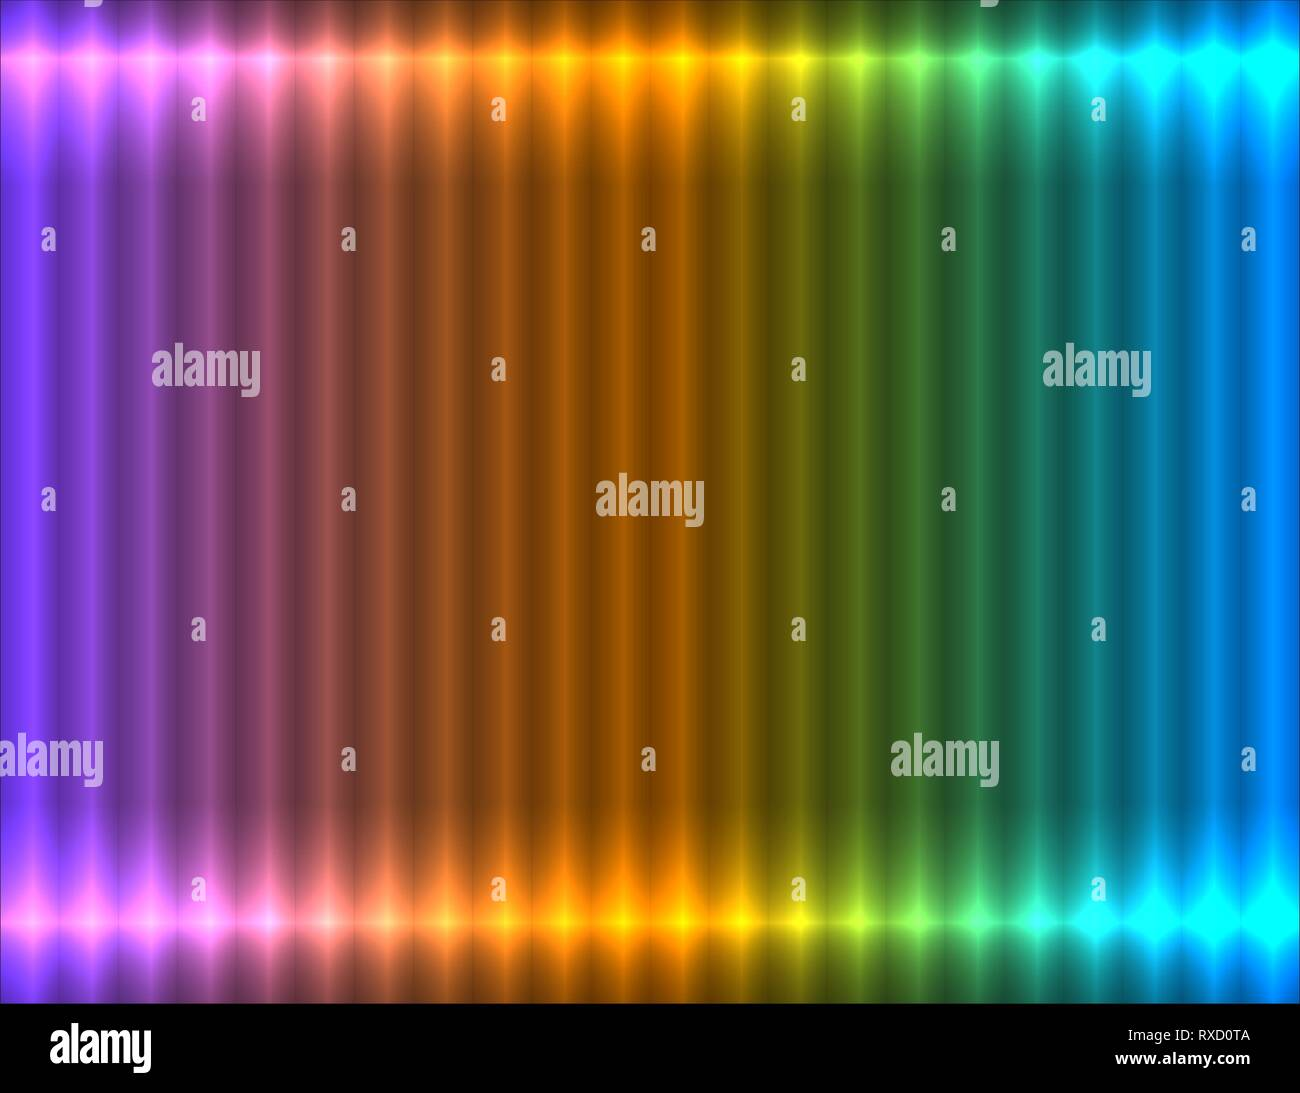 Violet, orange and blue pastel gradient linear background, neon effect - Stock Image